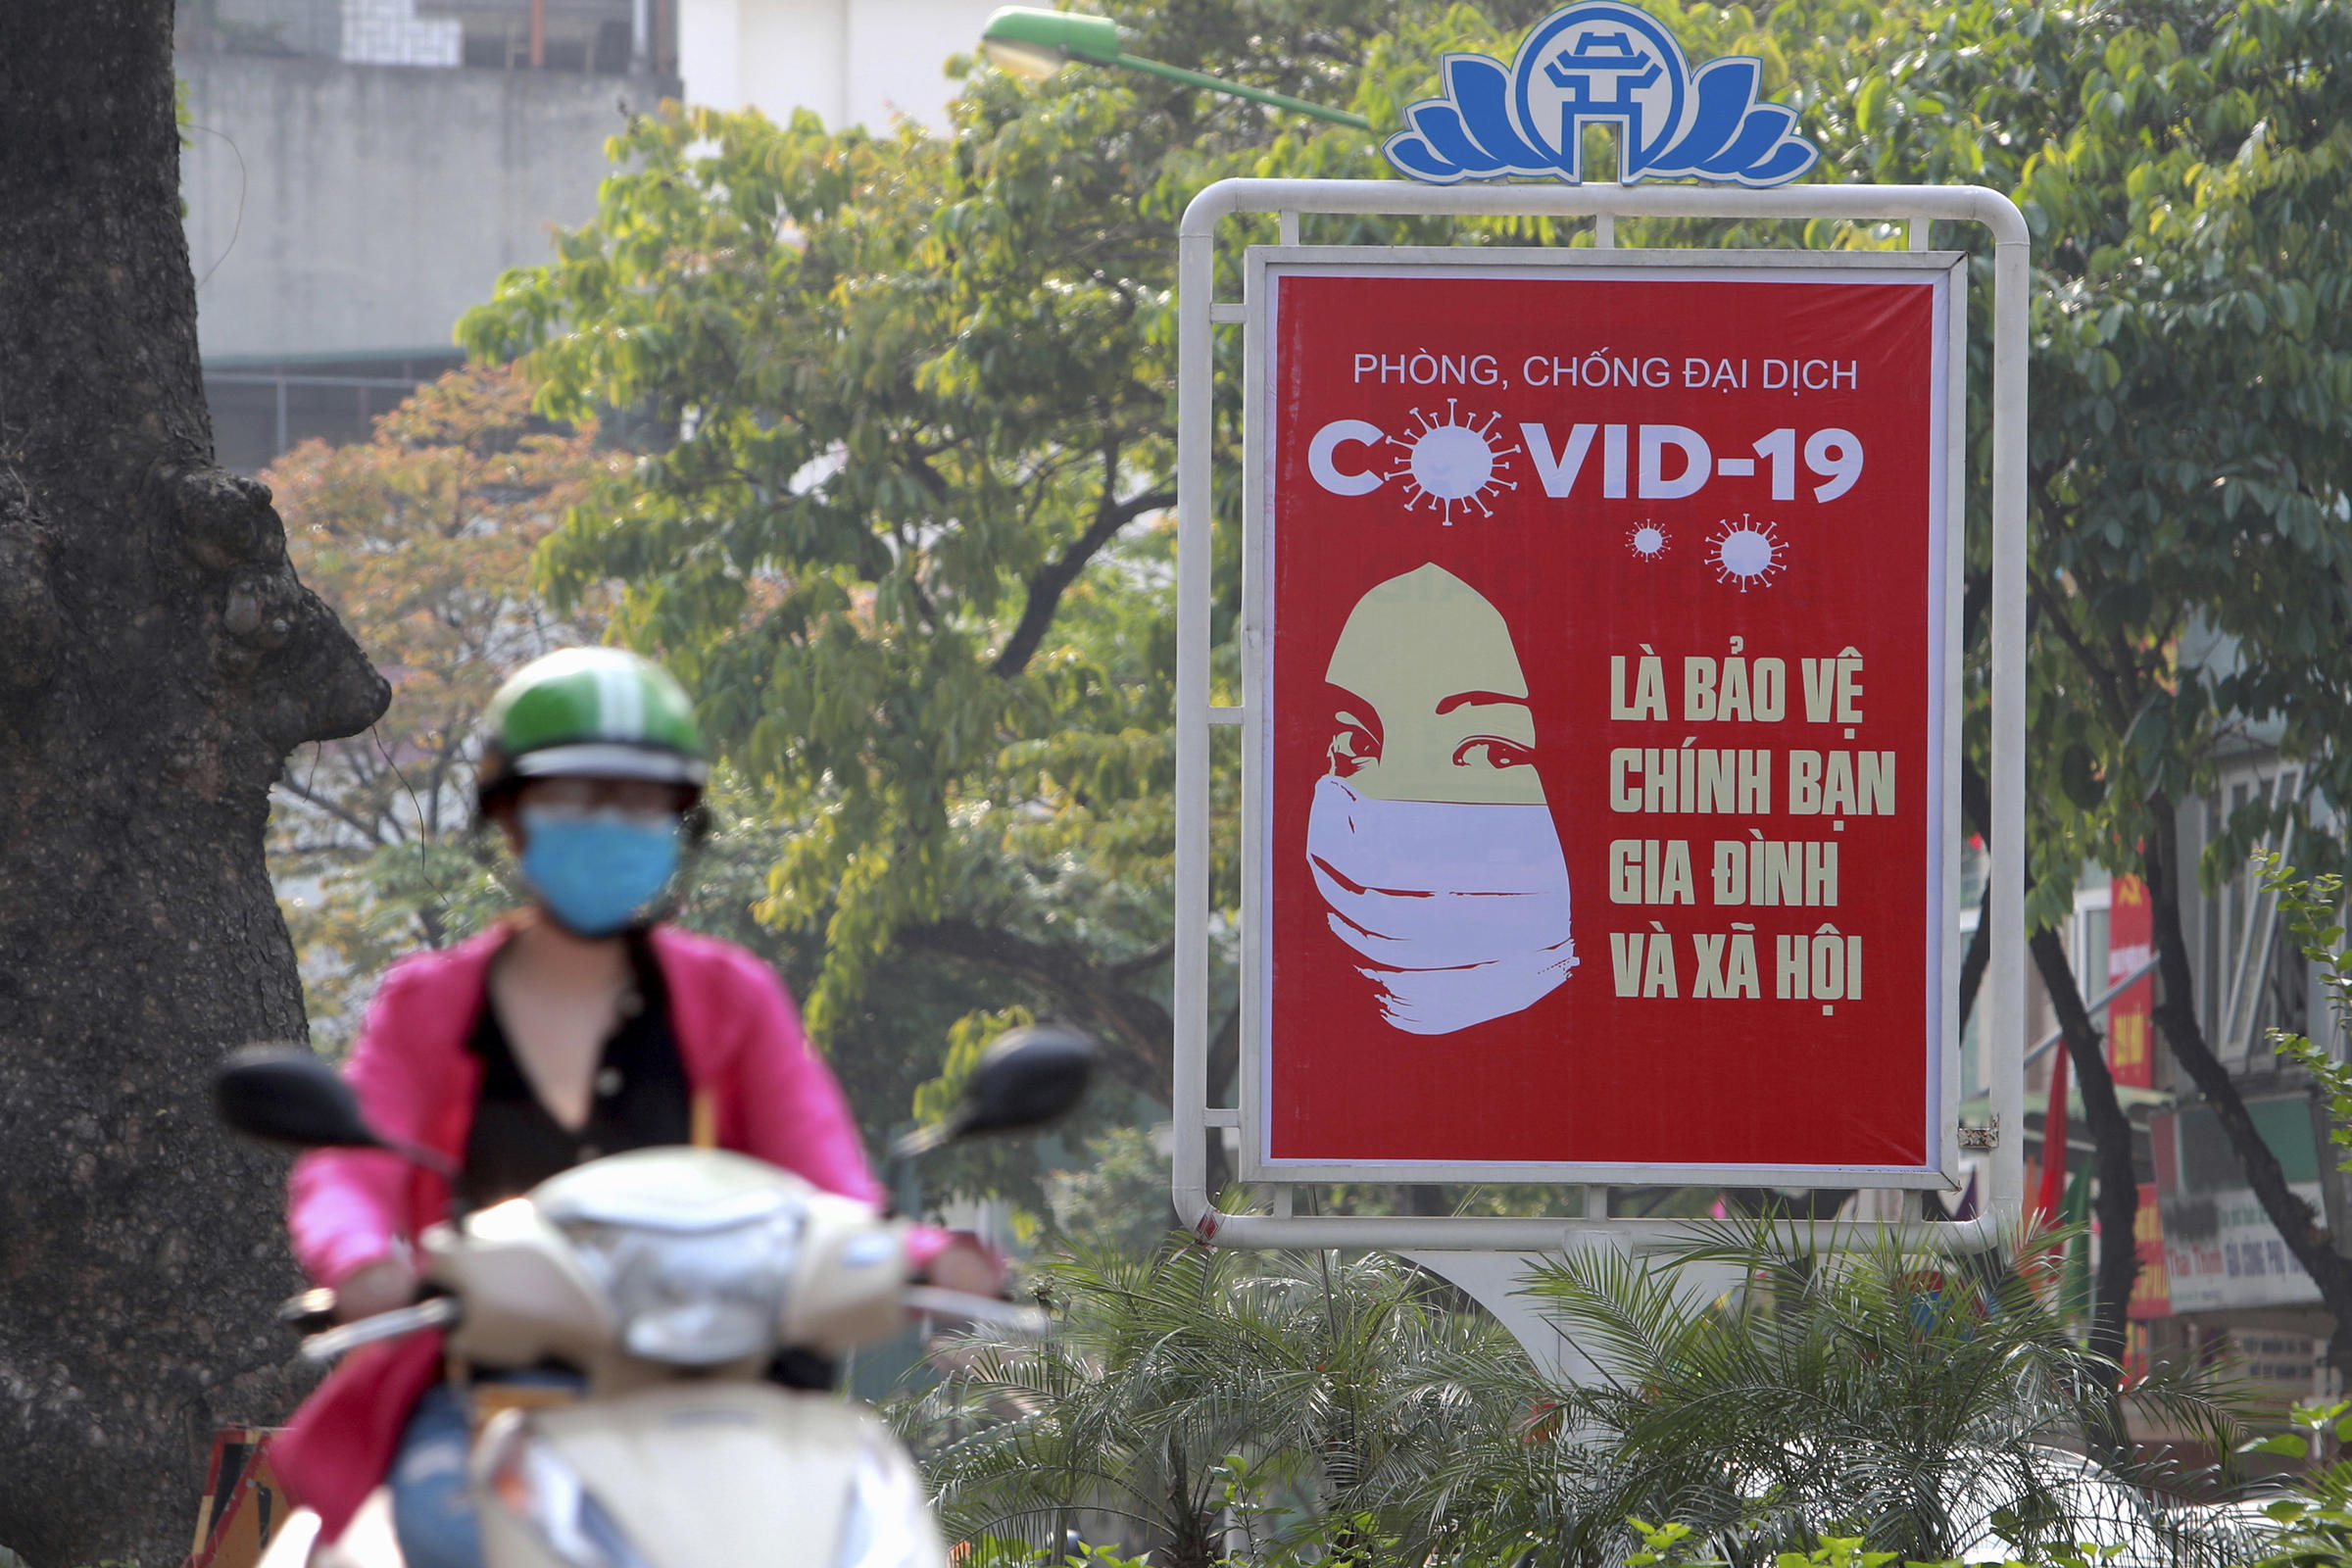 Hanoi shuts down bars, clubs and bans parties after COVID-19 spike